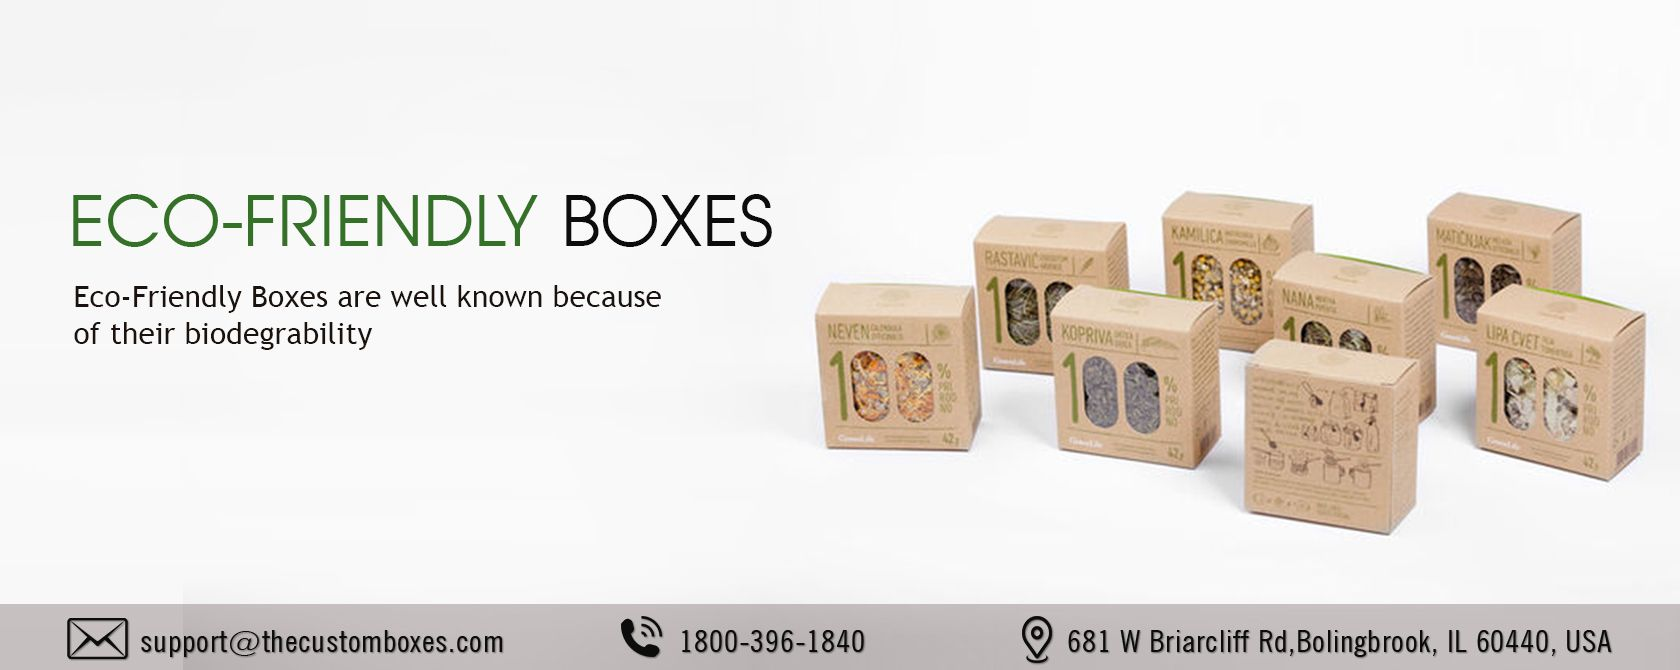 eco-friendly-boxes.jpg